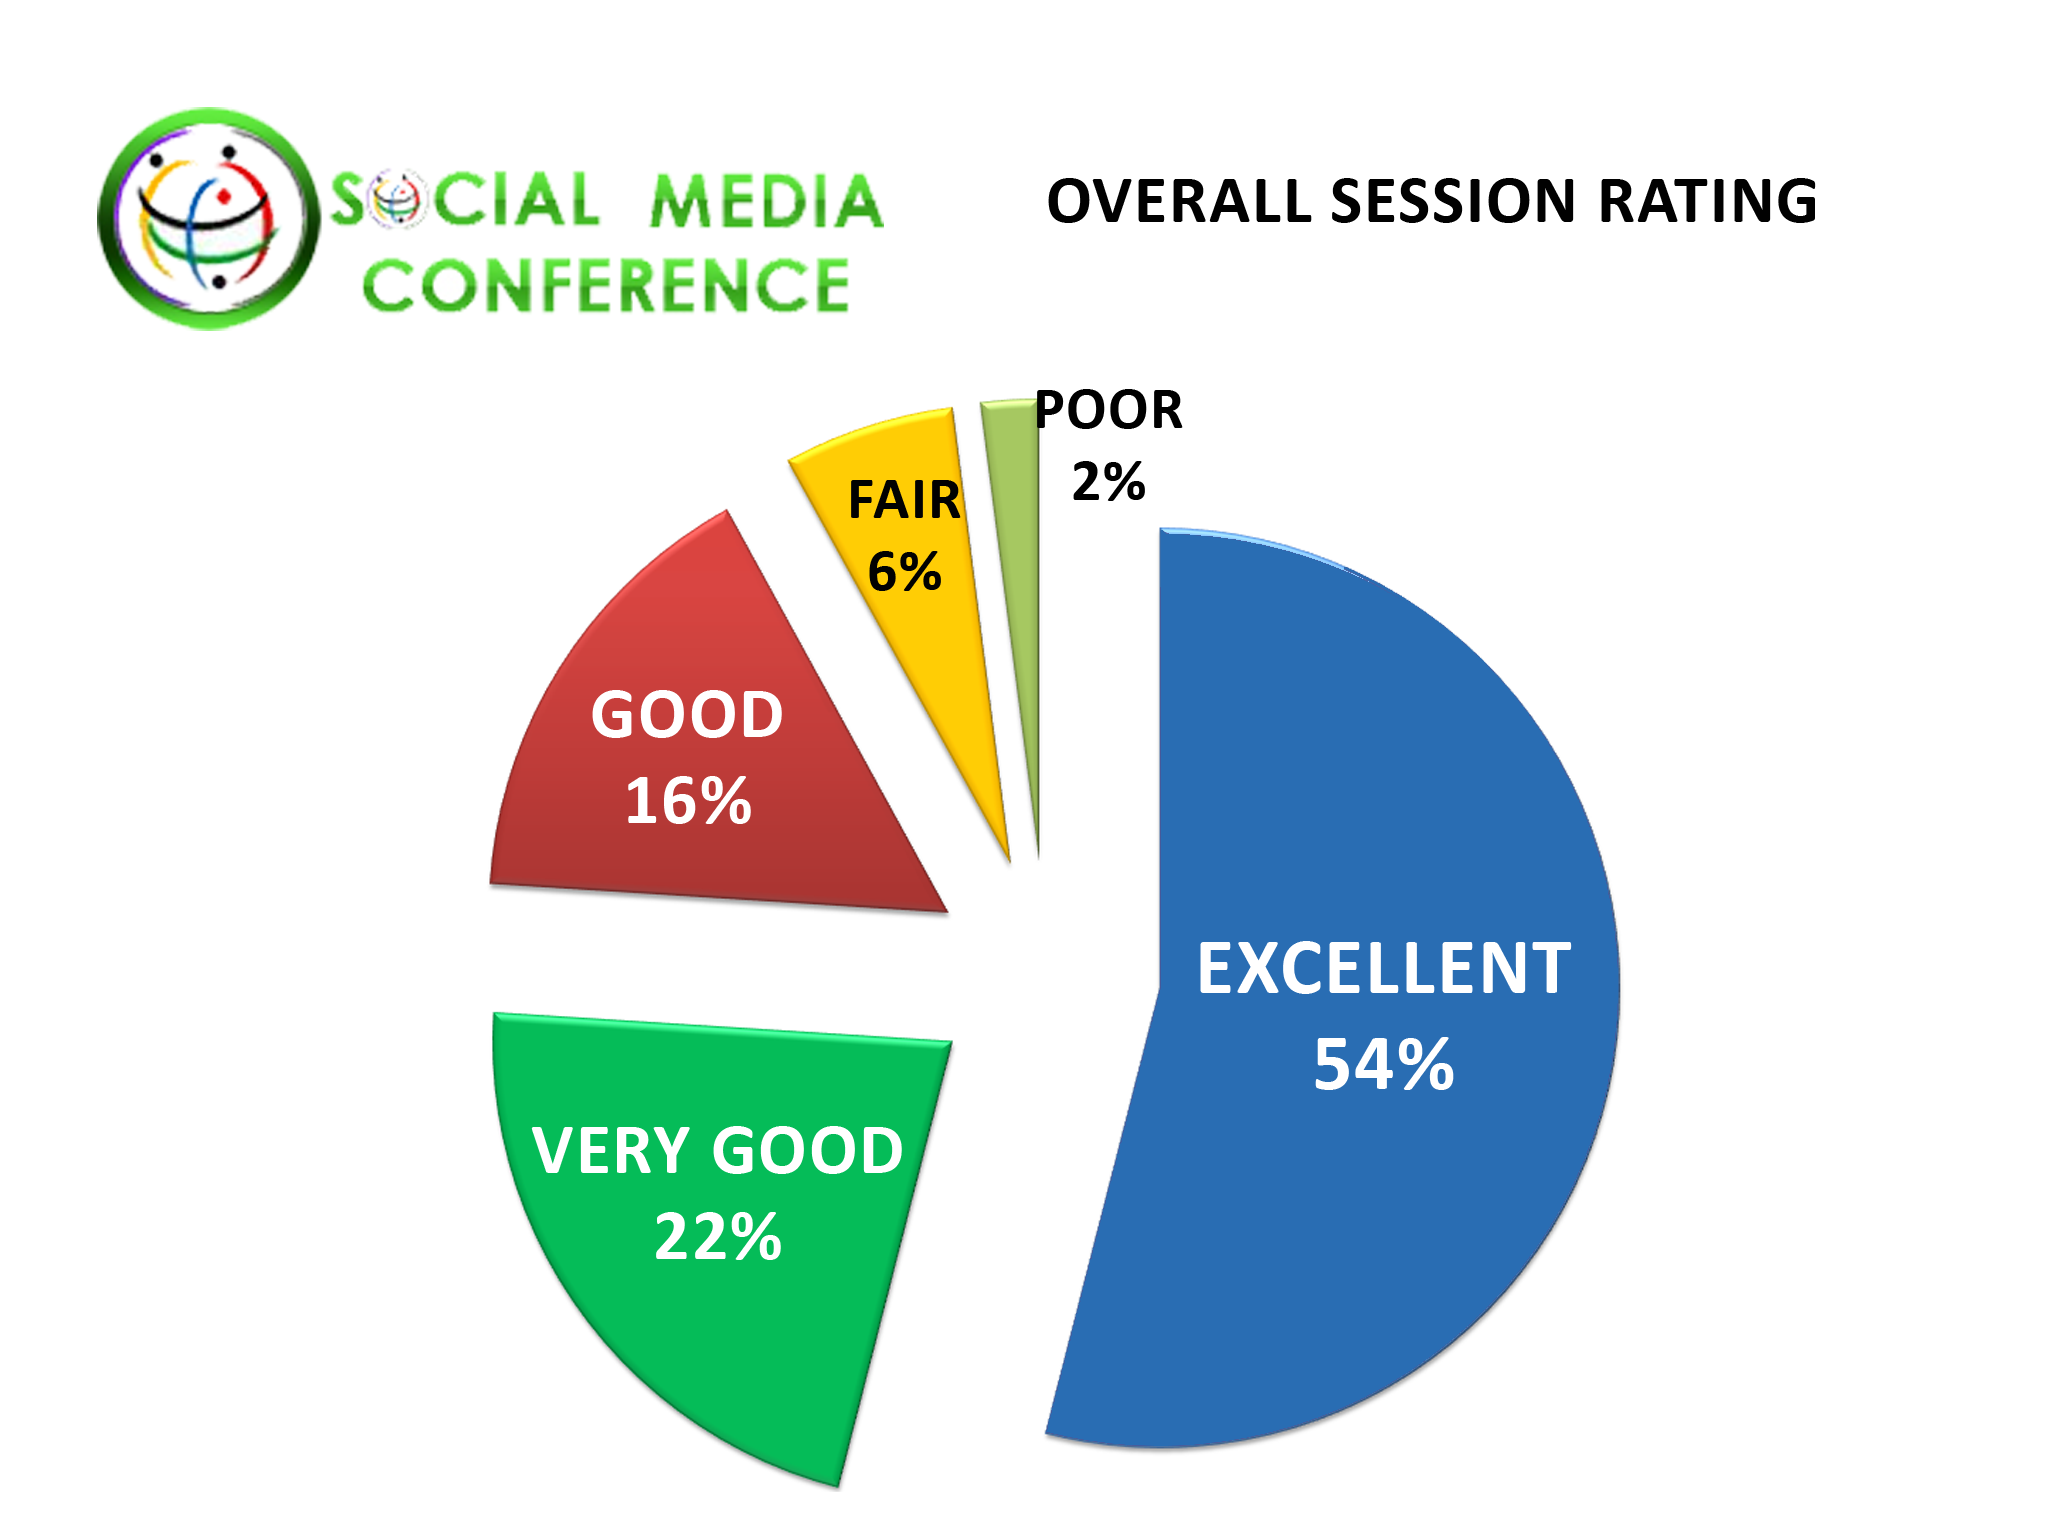 Social Networking Conference January 2012 Lecture Statistics Dating Industry Overall Session Rating